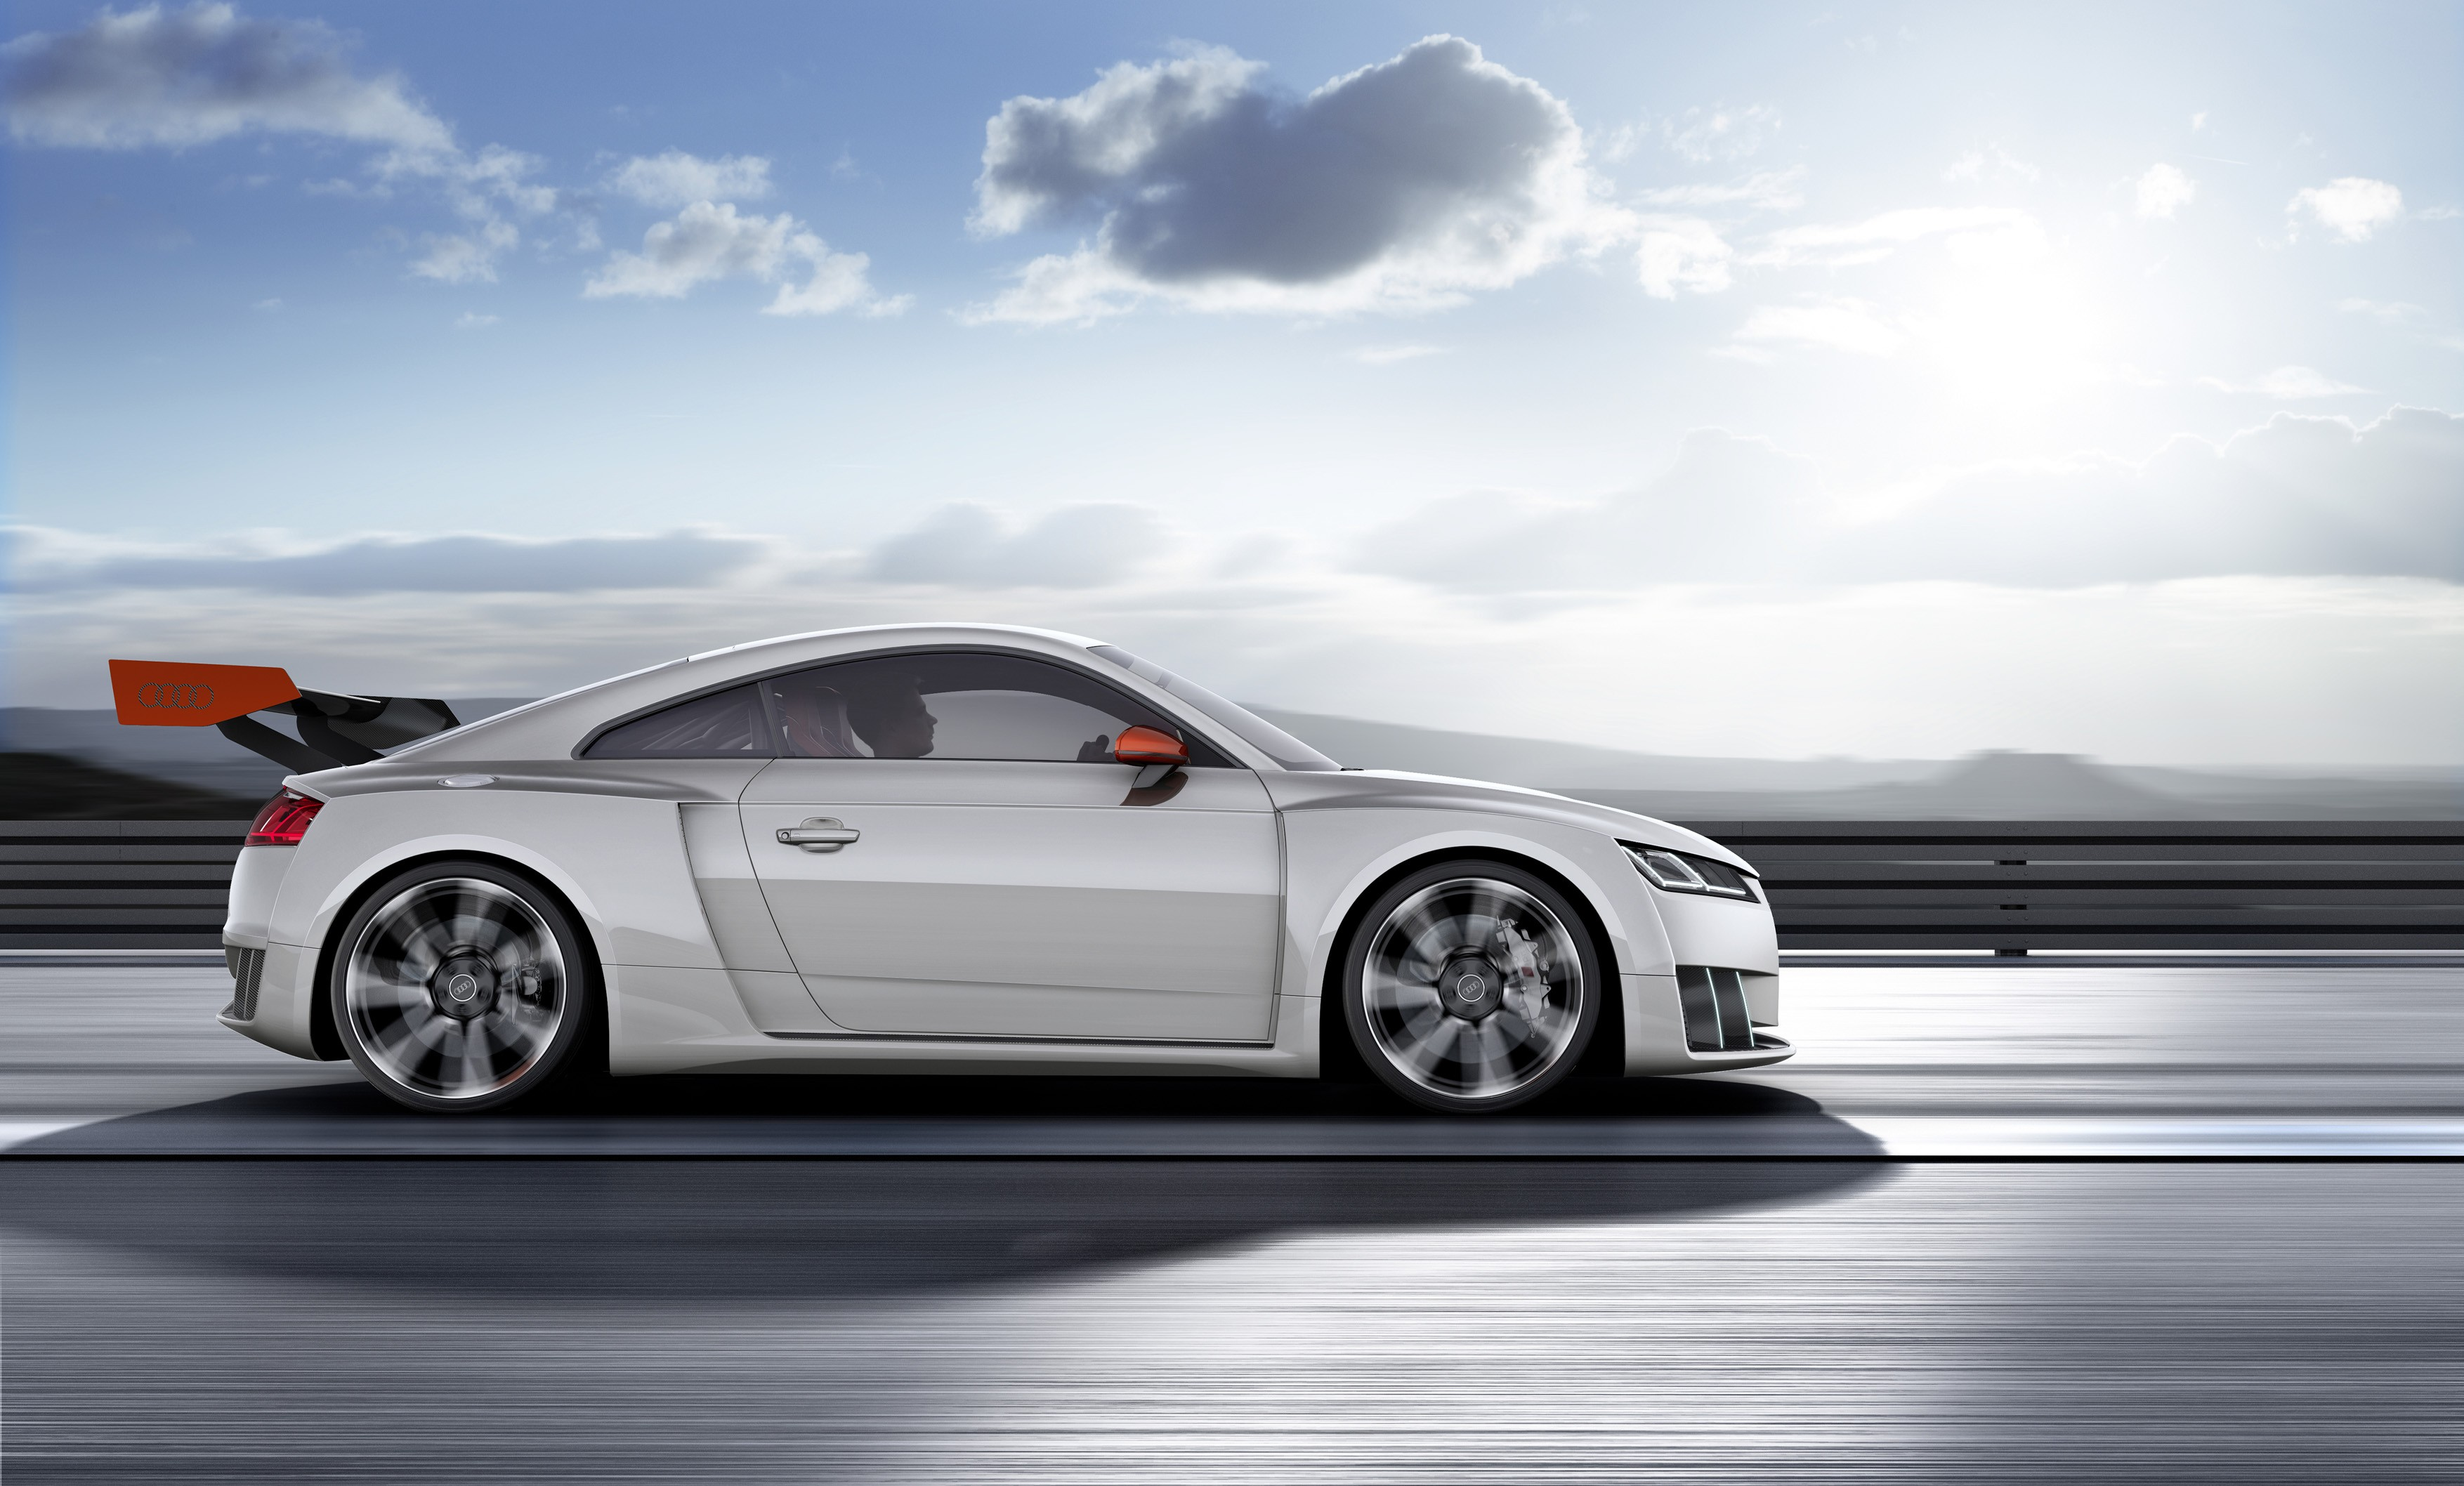 Audi Tt For Sale >> 600 HP Audi TT Clubsport Brings 2.5 TFSI with Electric ...